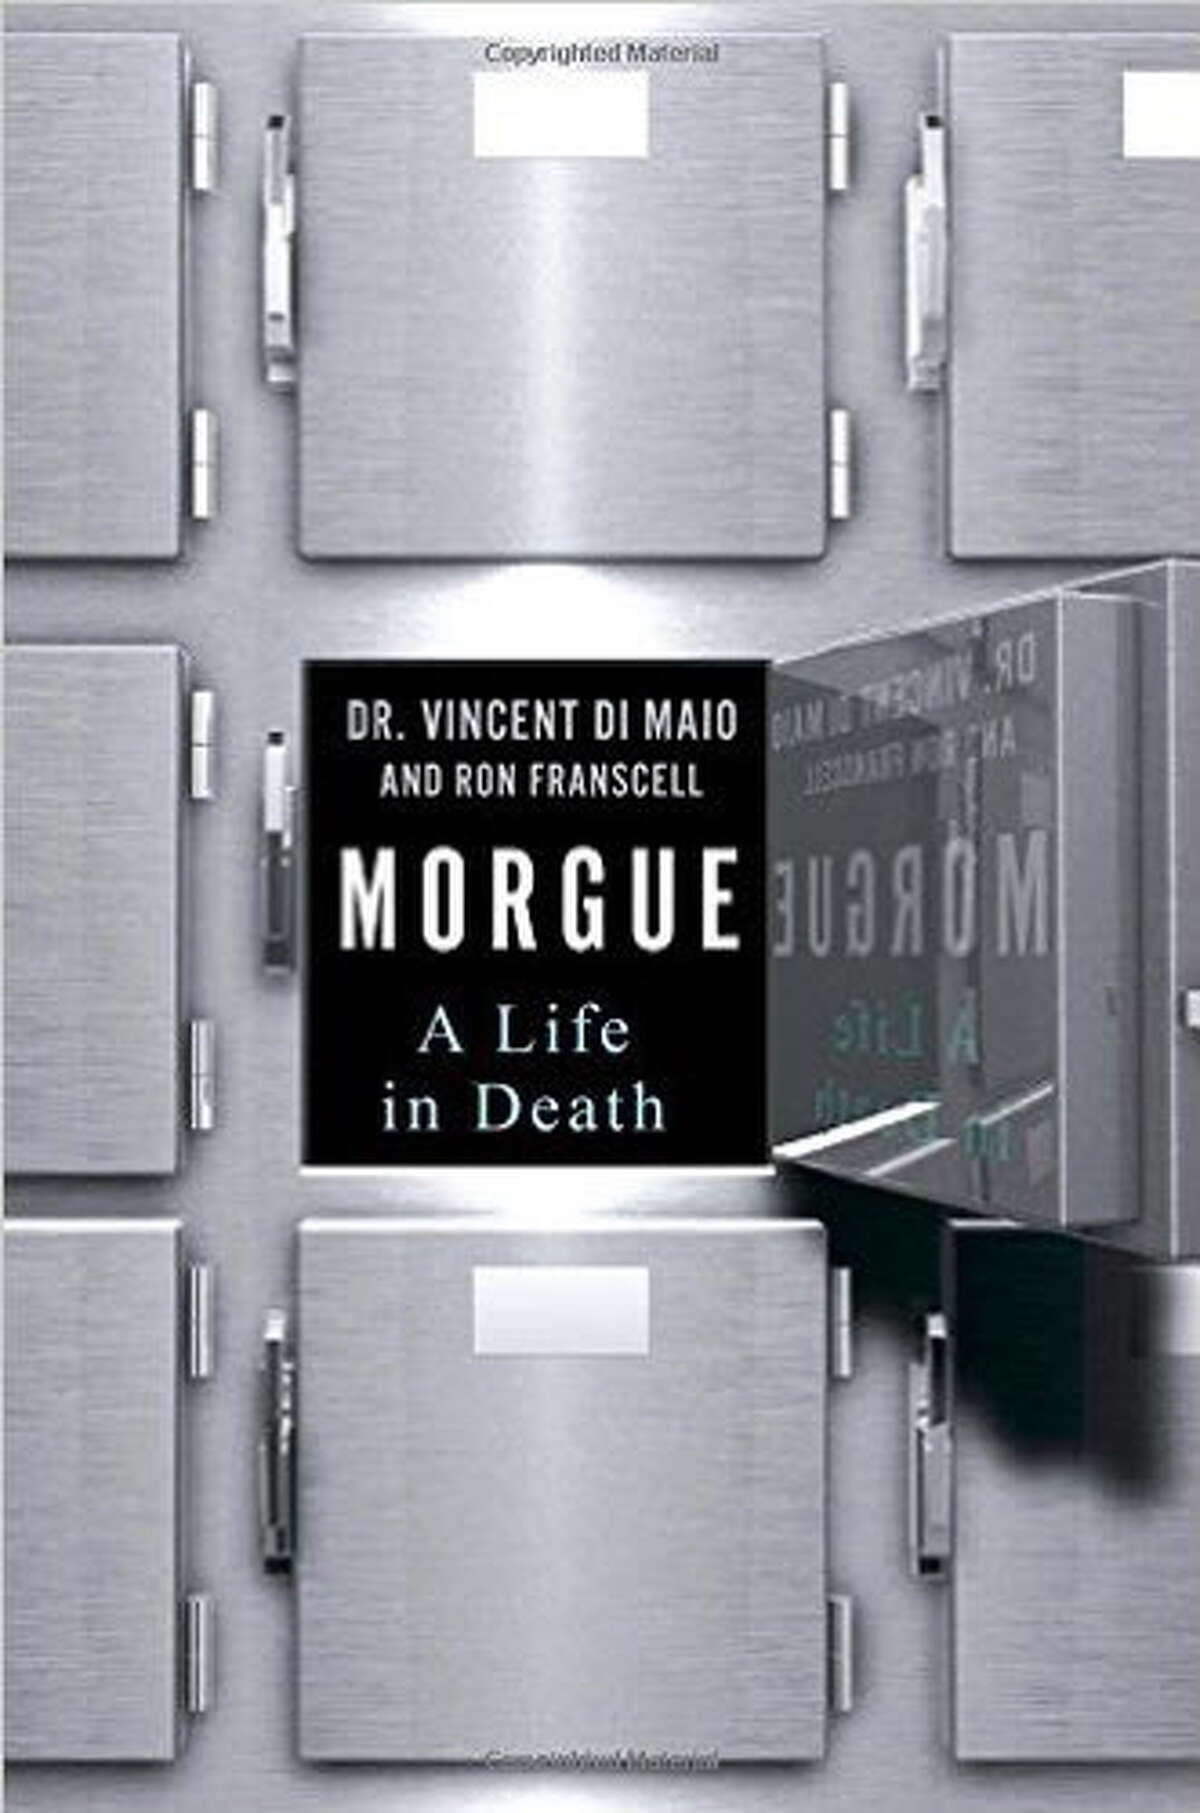 Morgue: A Life in Death by Dr. Vincent Di Maio and Ron Franscell, tells the story of the veteran medical examiner's most famous cases.